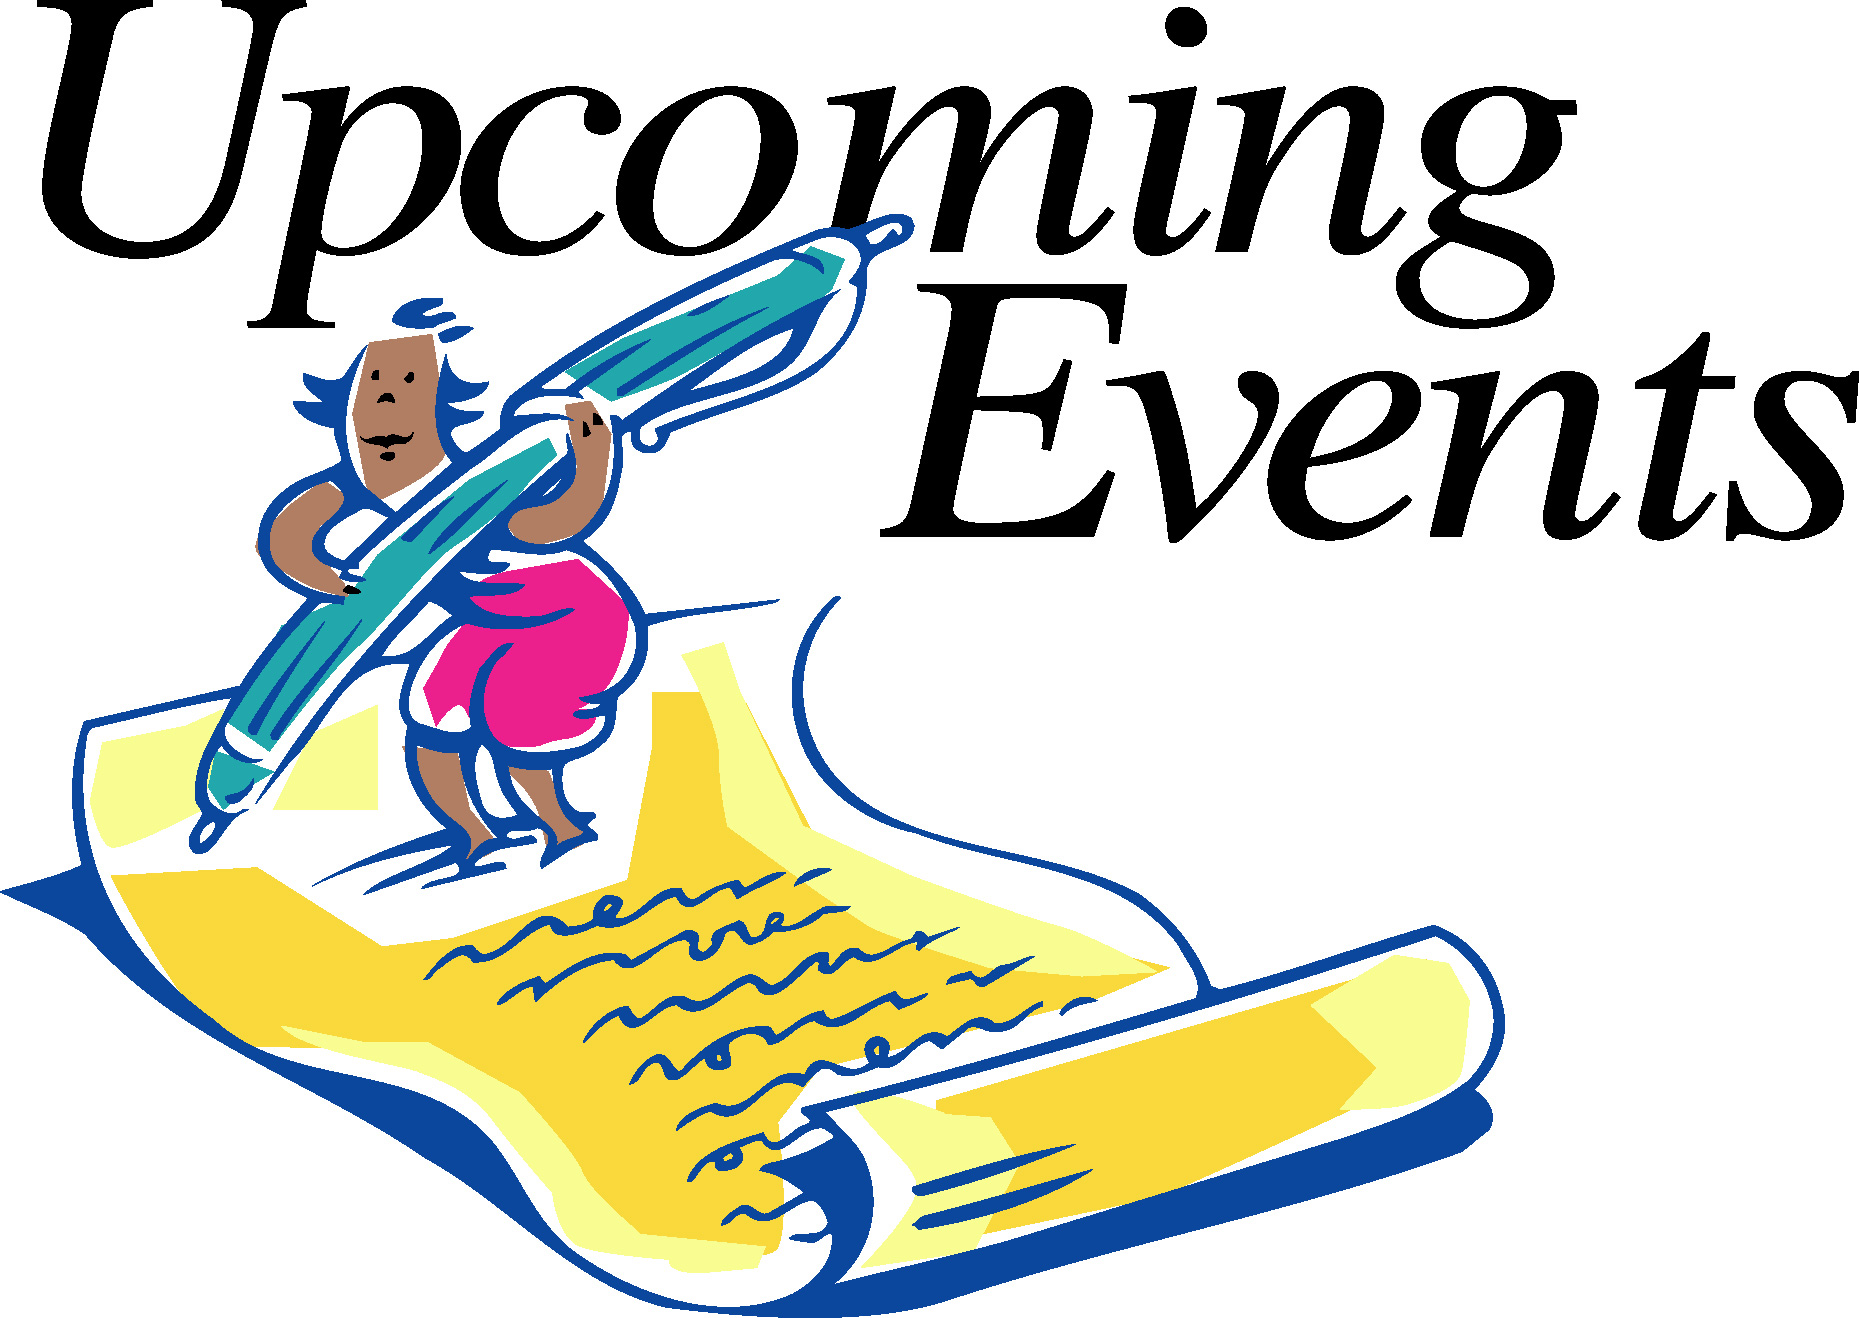 UpcomingEvents Clip Art.